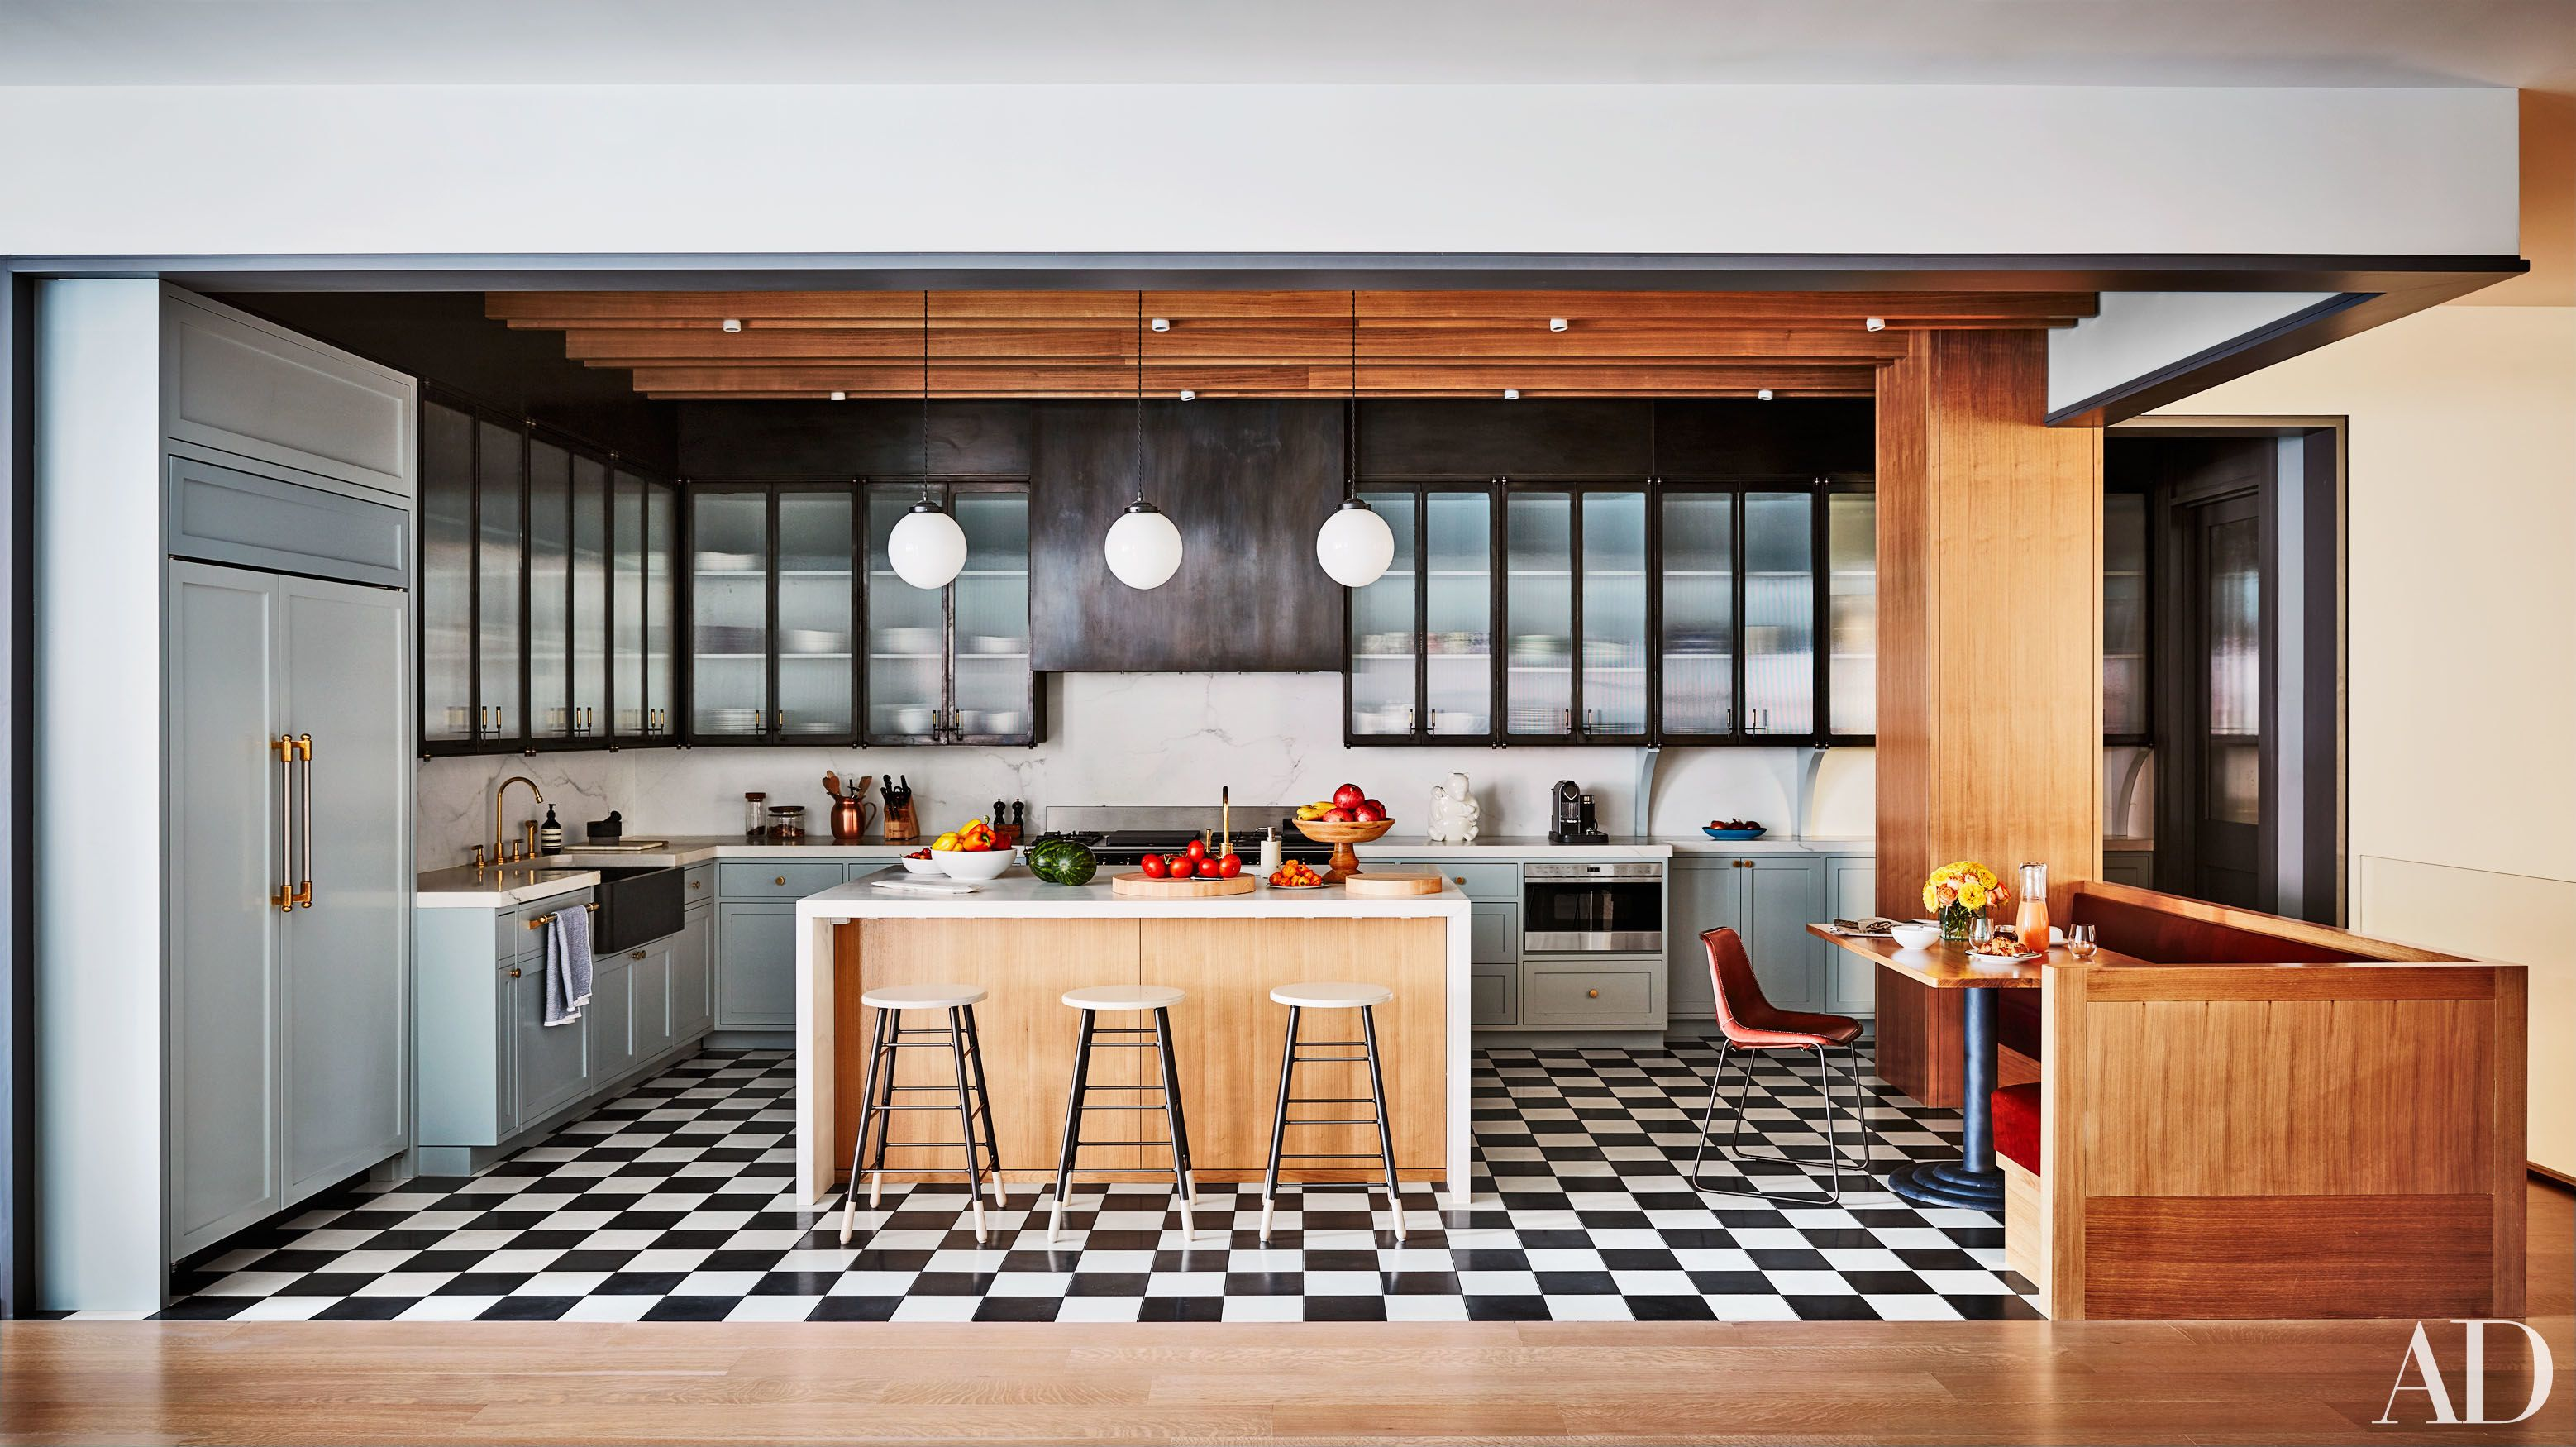 City Home Kitchen Naomi Watts And Liev Schreiber's Stunning New York City Apartment